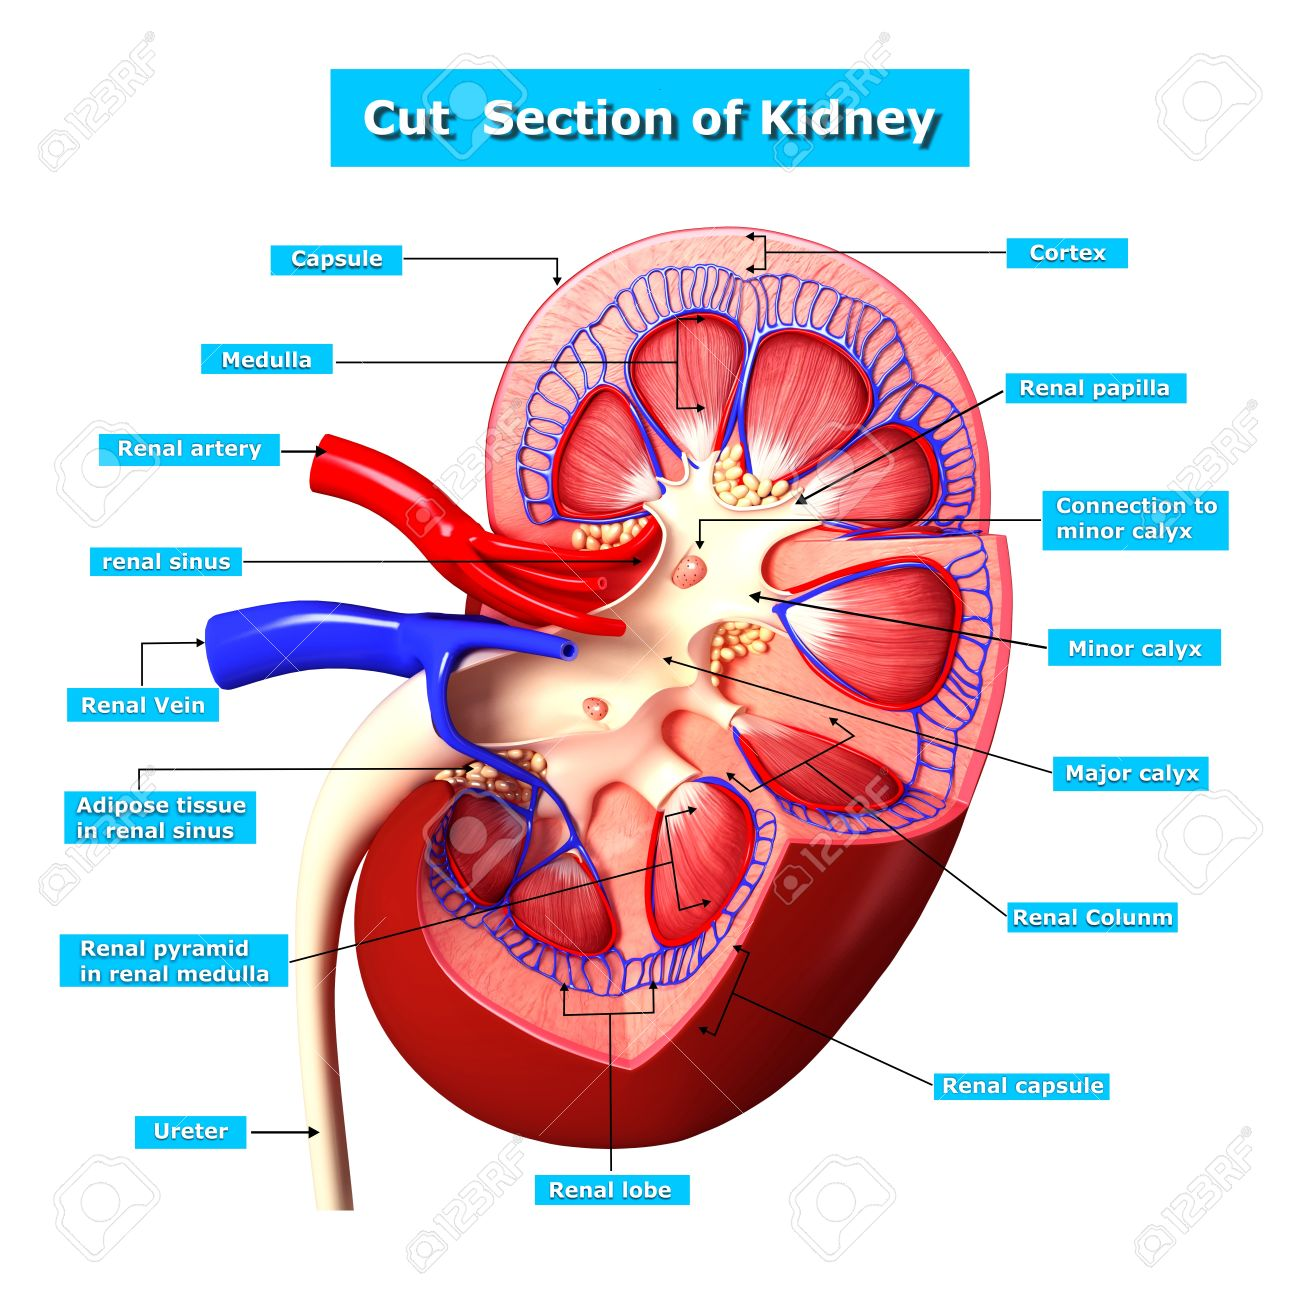 Anatomy Of Kidney Cut Section Stock Photo, Picture And Royalty Free ...